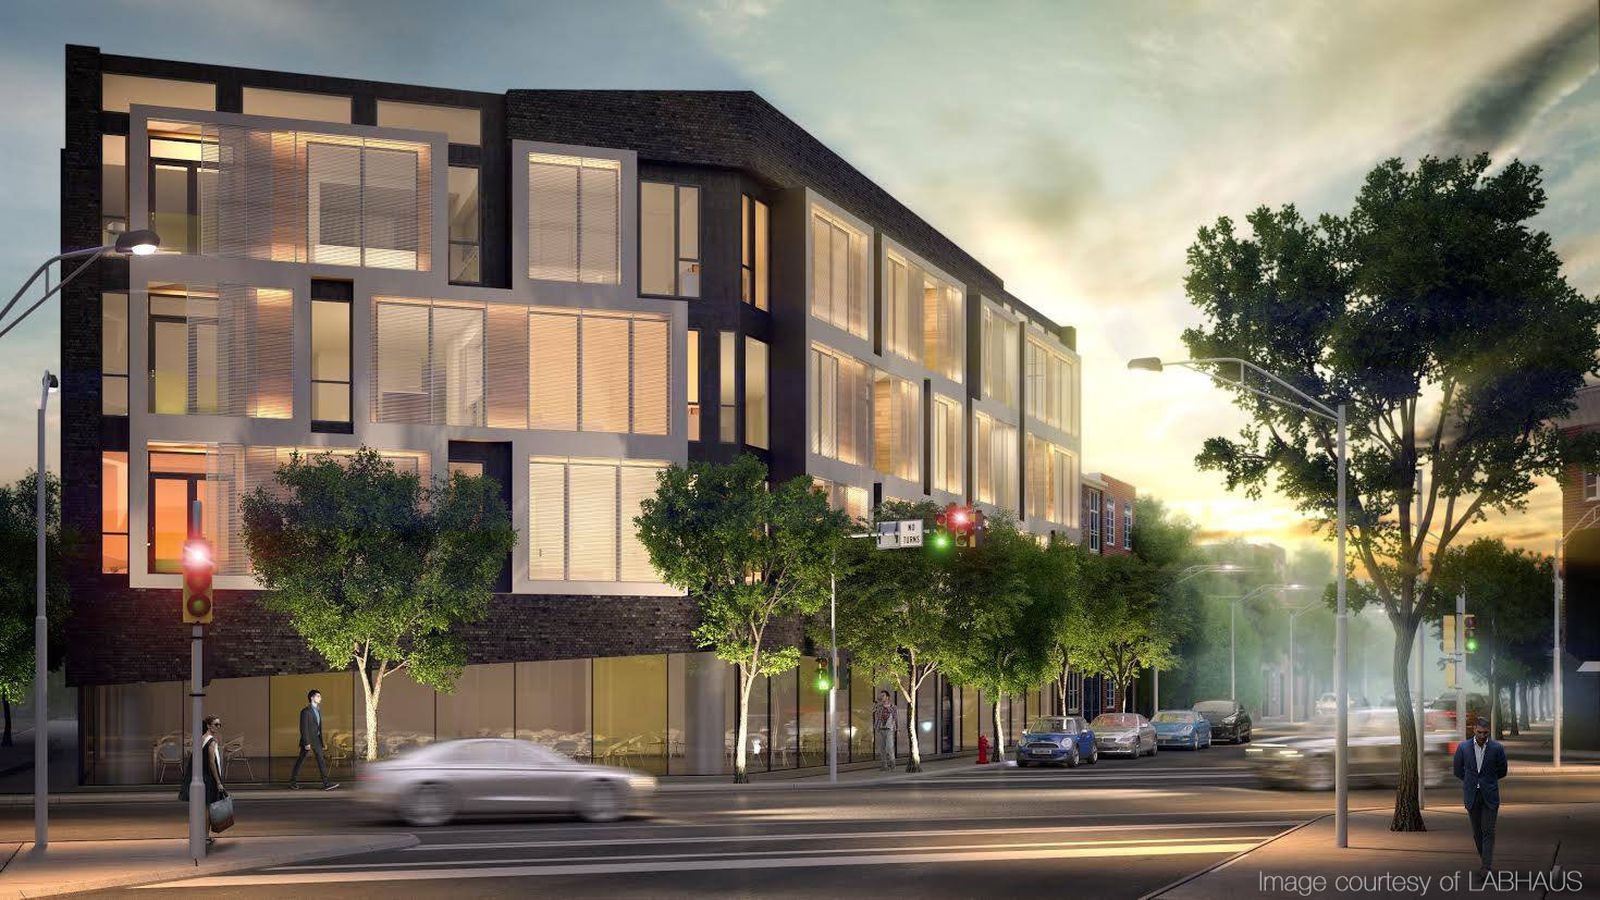 Modular Luxury Condo Building Drops In Graduate Hospital